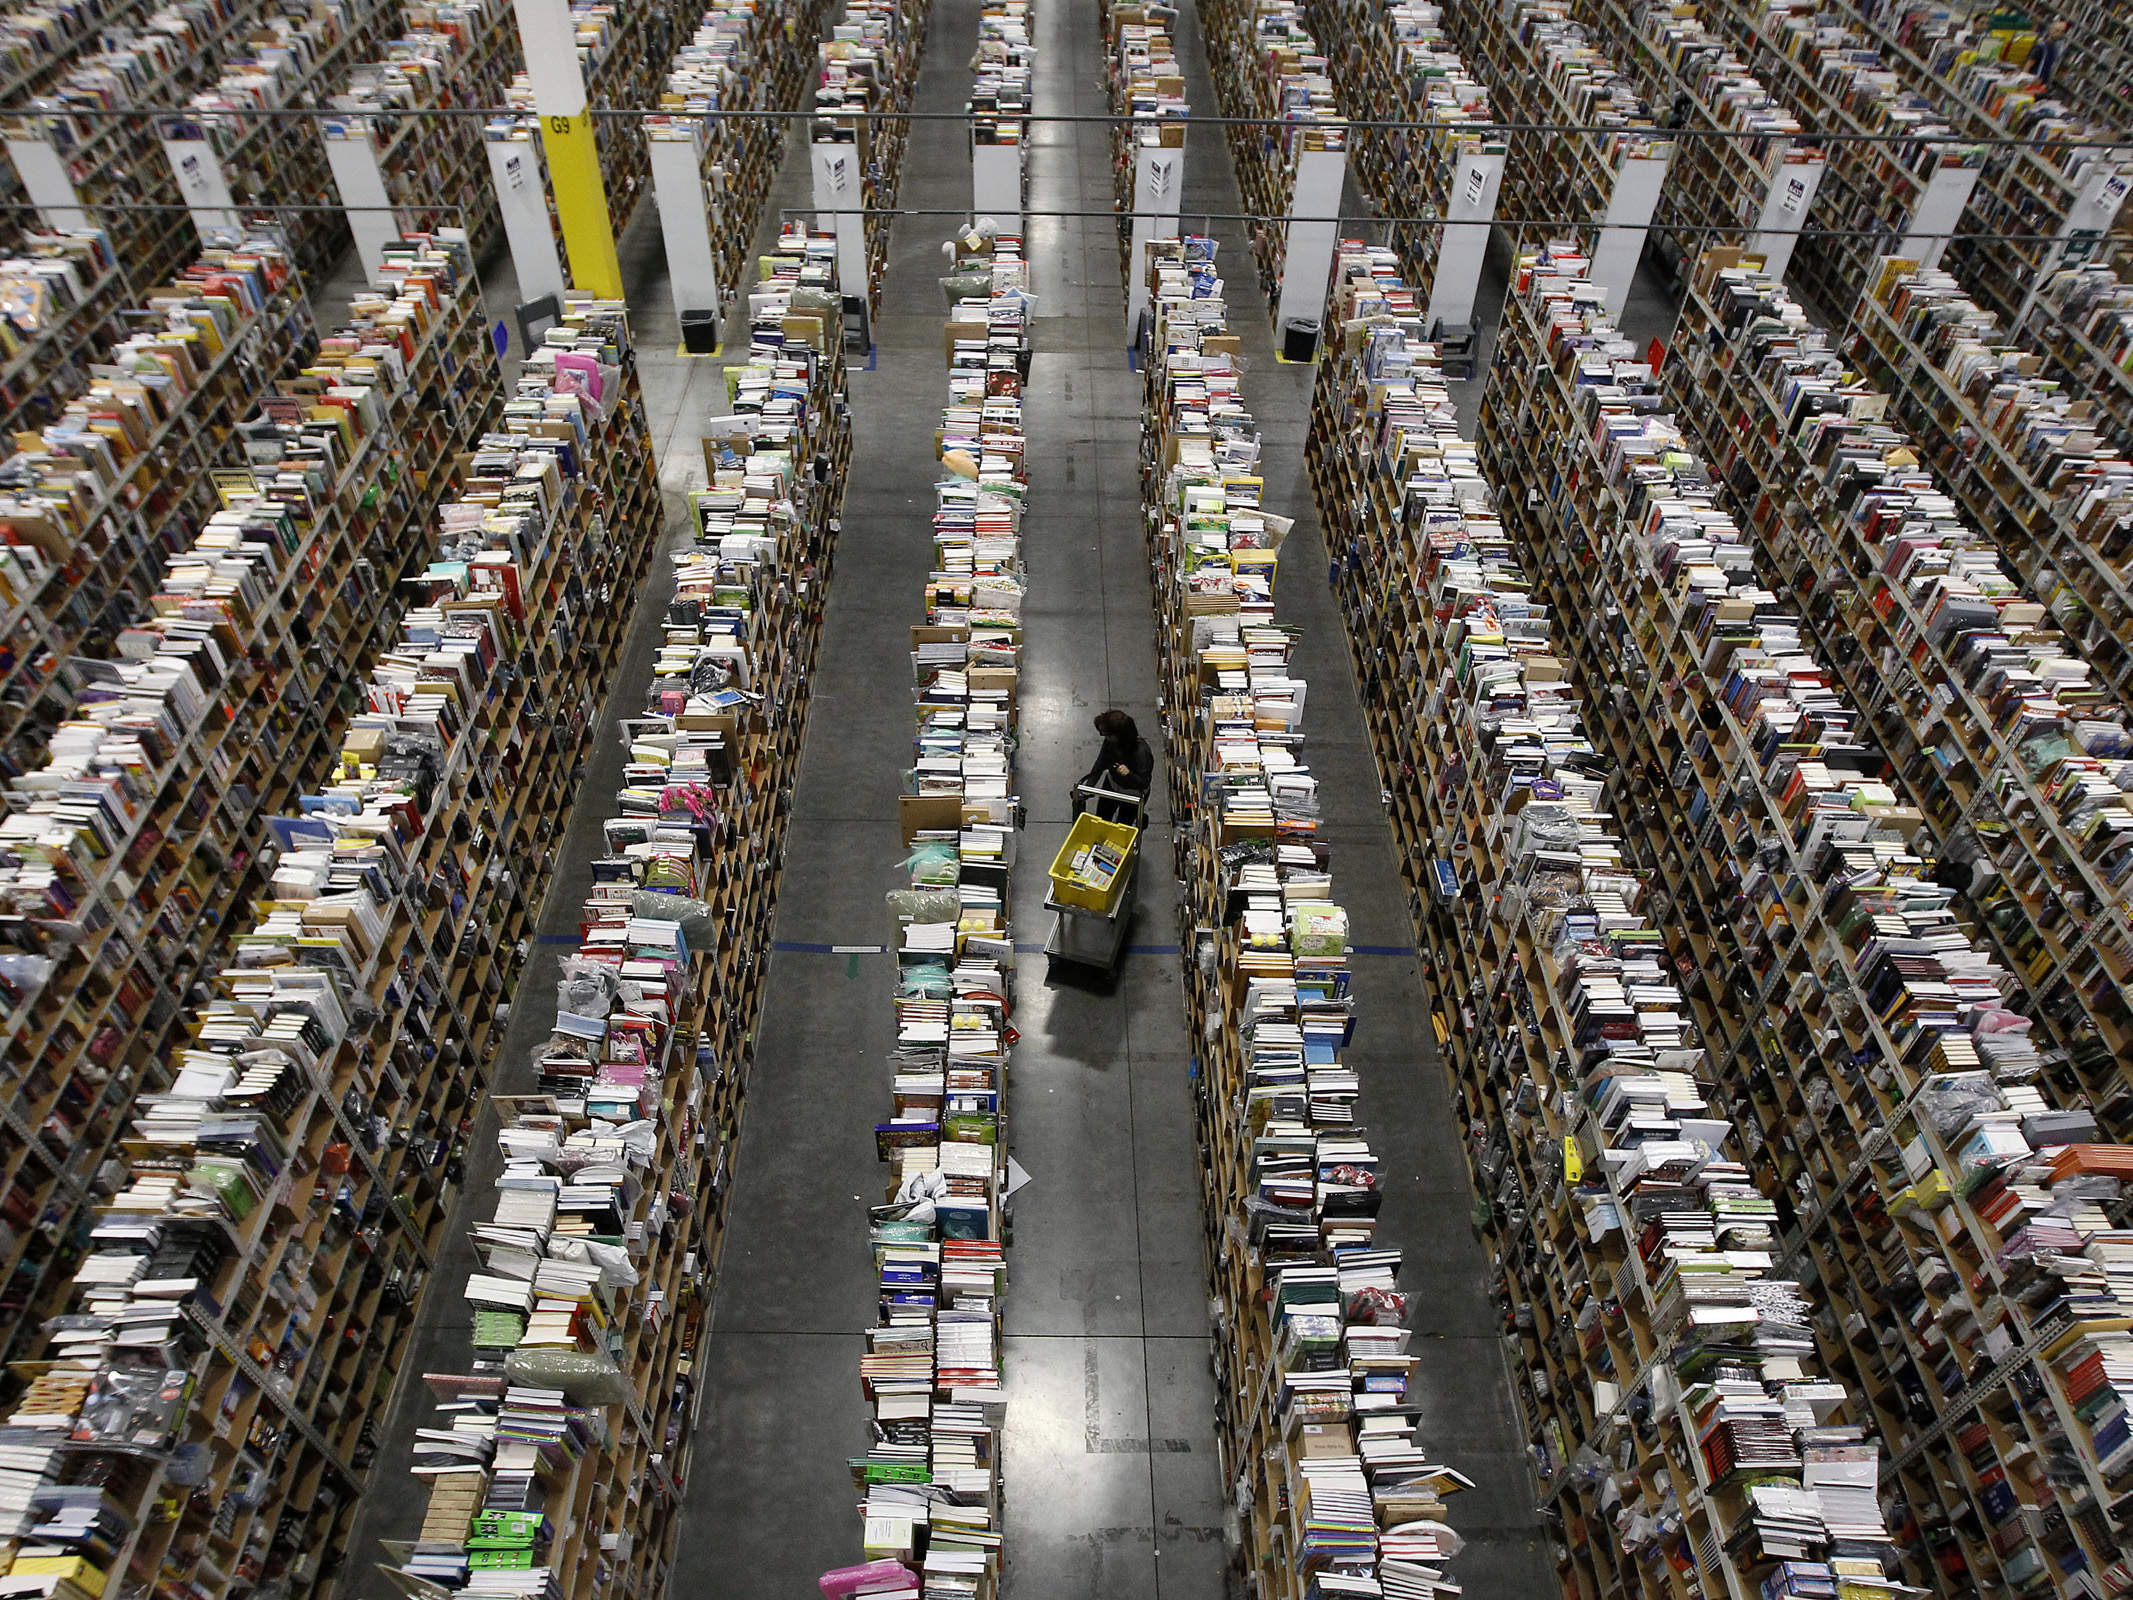 How I learned to stop worrying and love Amazon